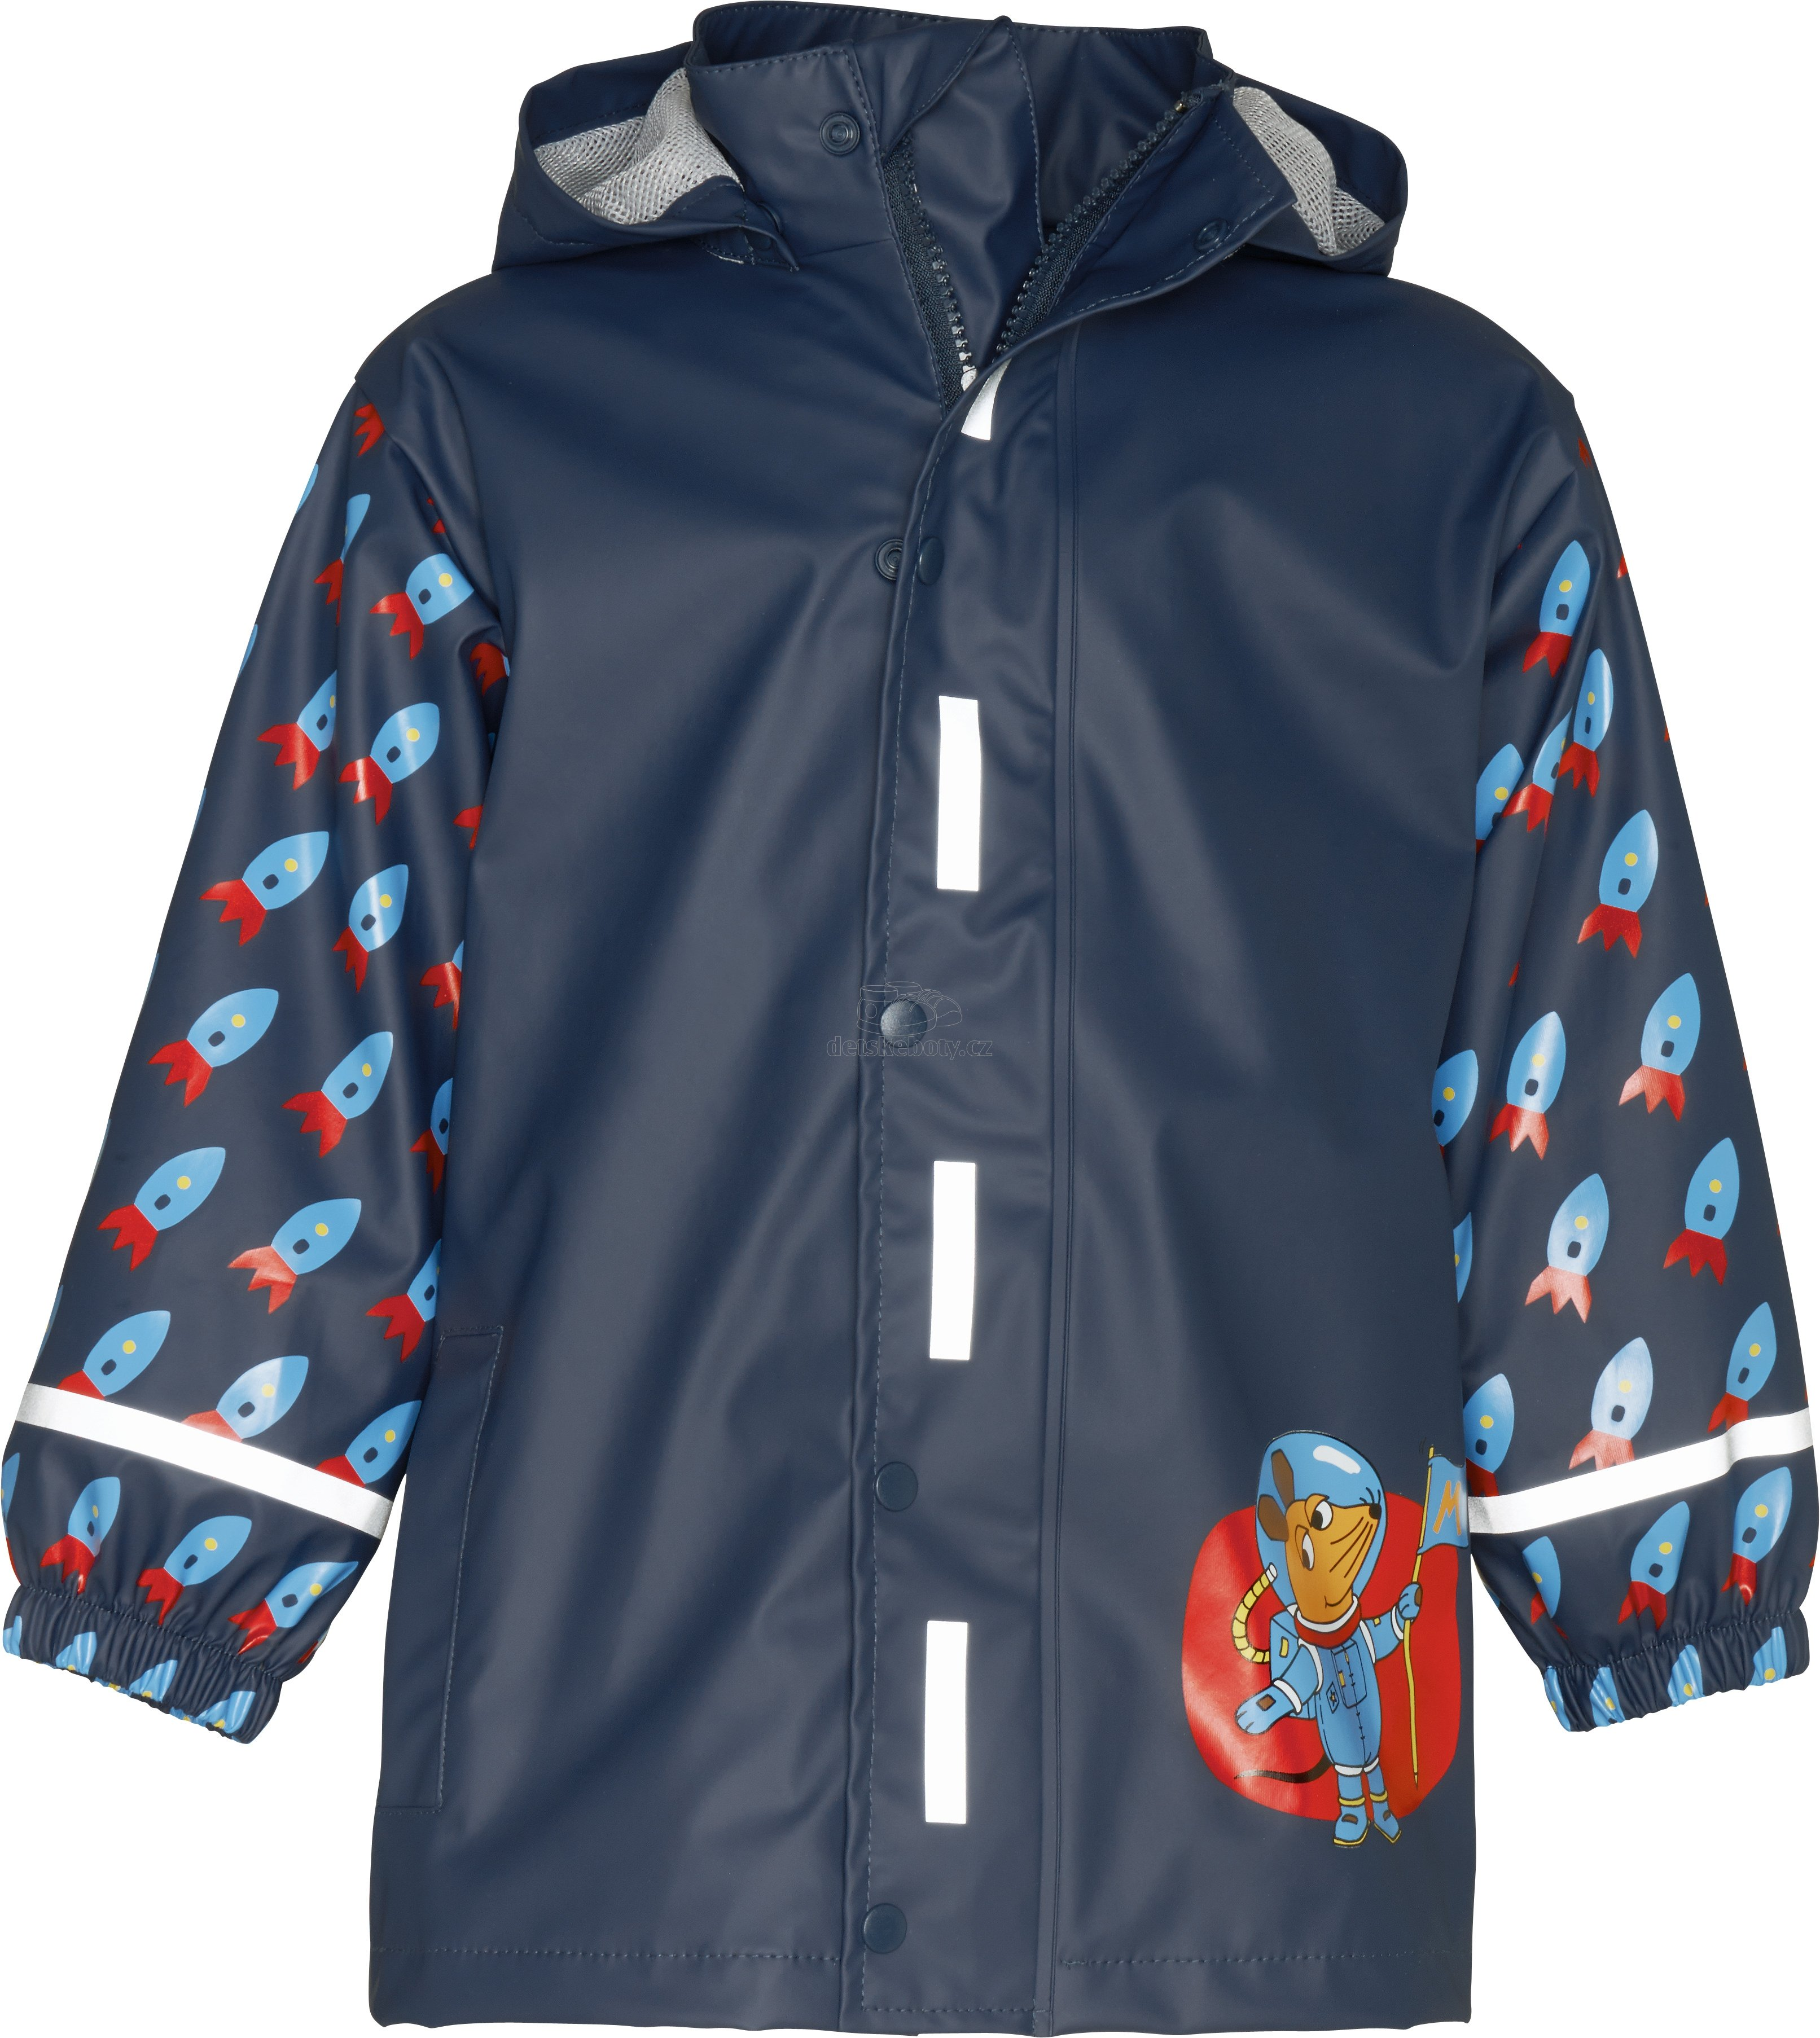 Pláštěnka Playshoes 408507 Outer Space